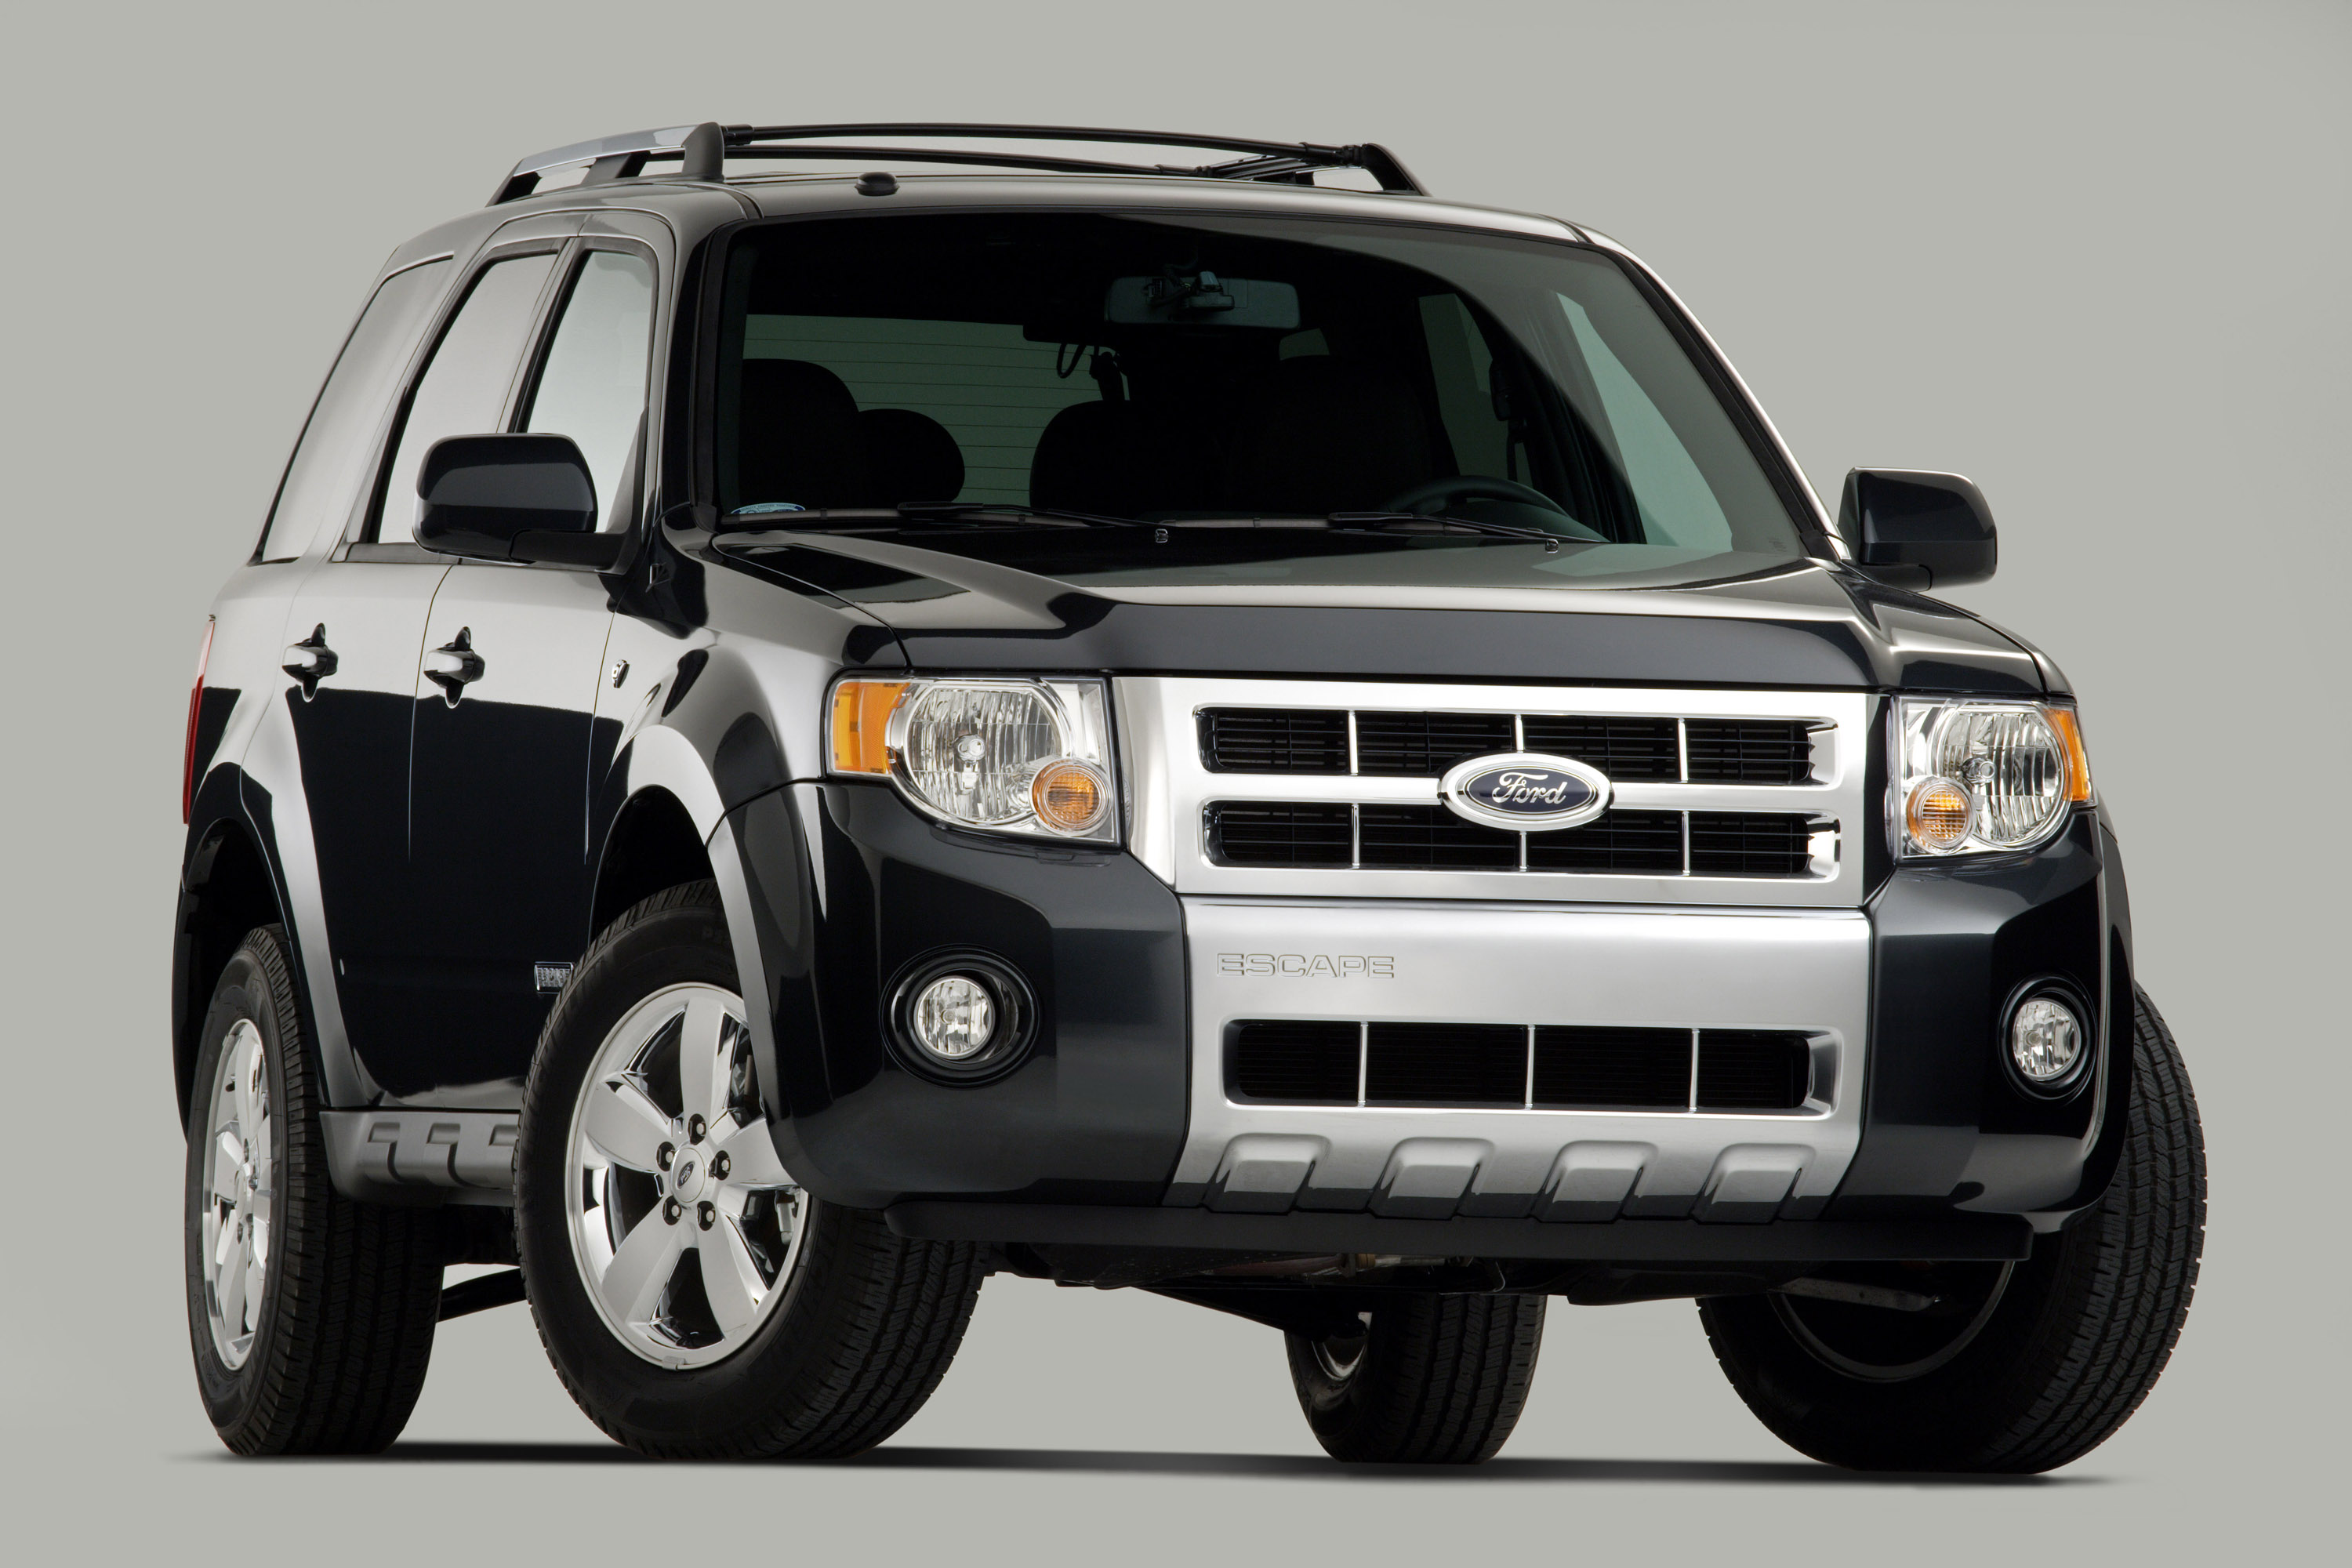 Ford escape 2009 photo - 4